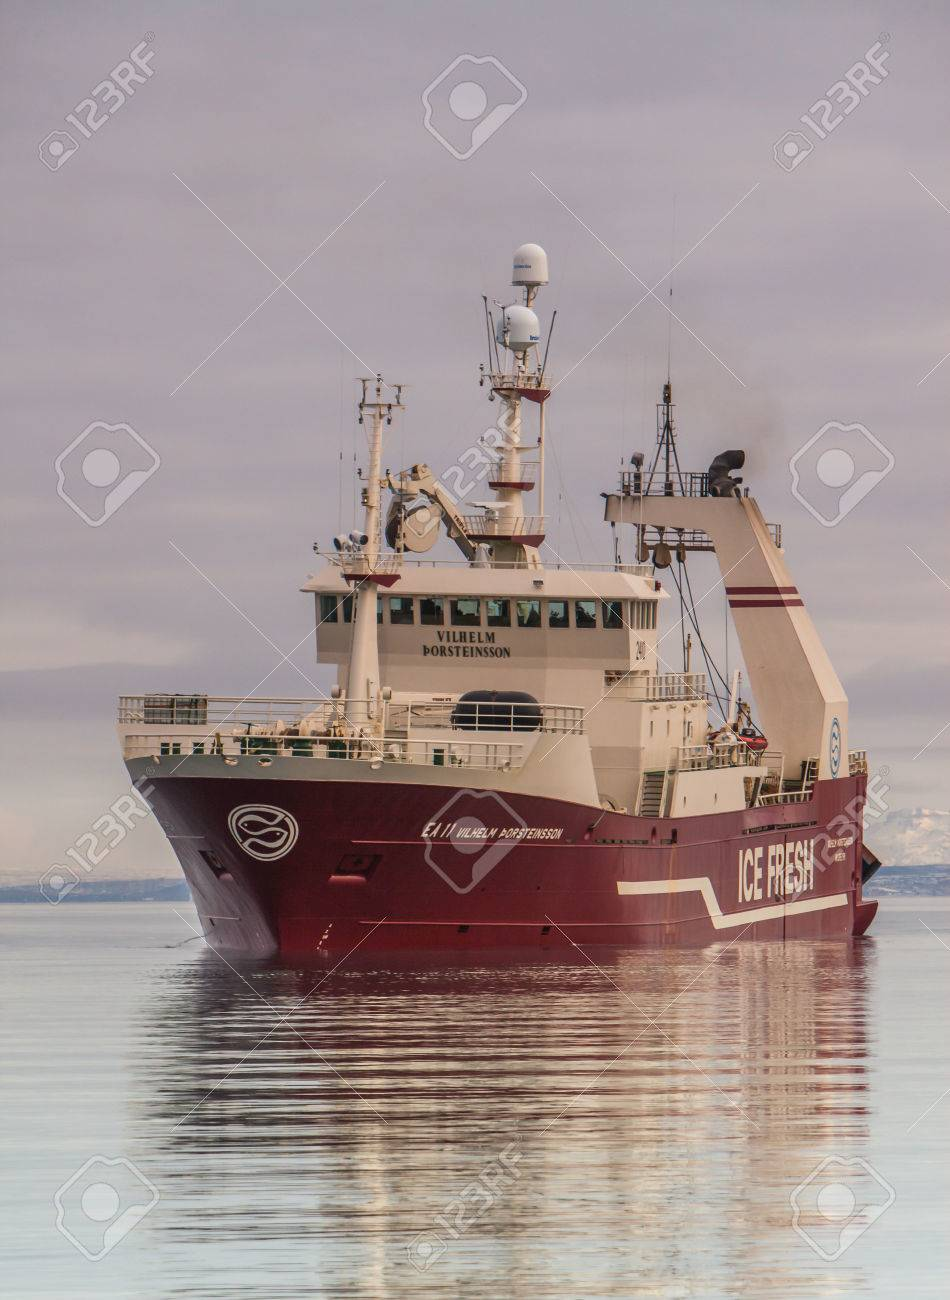 Helguvik, Iceland - March 12, 2013   Offshore commercial pelagic fishing vessel approaching port in Helguvik, Iceland,  fully loaded with Capelin   Stock Photo - 25131436